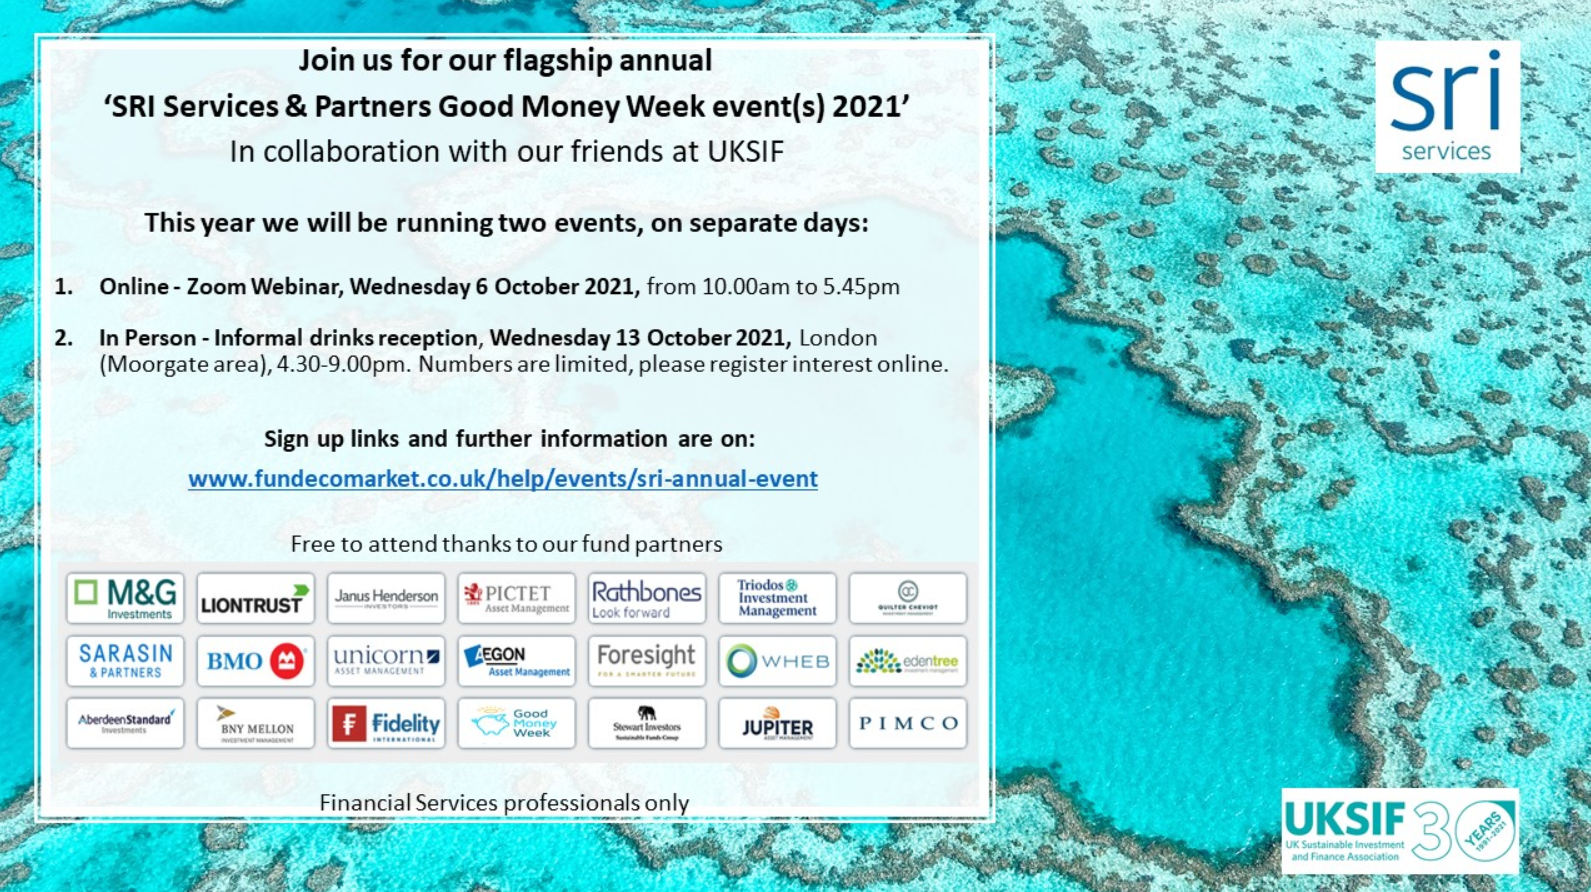 SRI Services and Partners annual Good Money Week event(s) - Preview Image